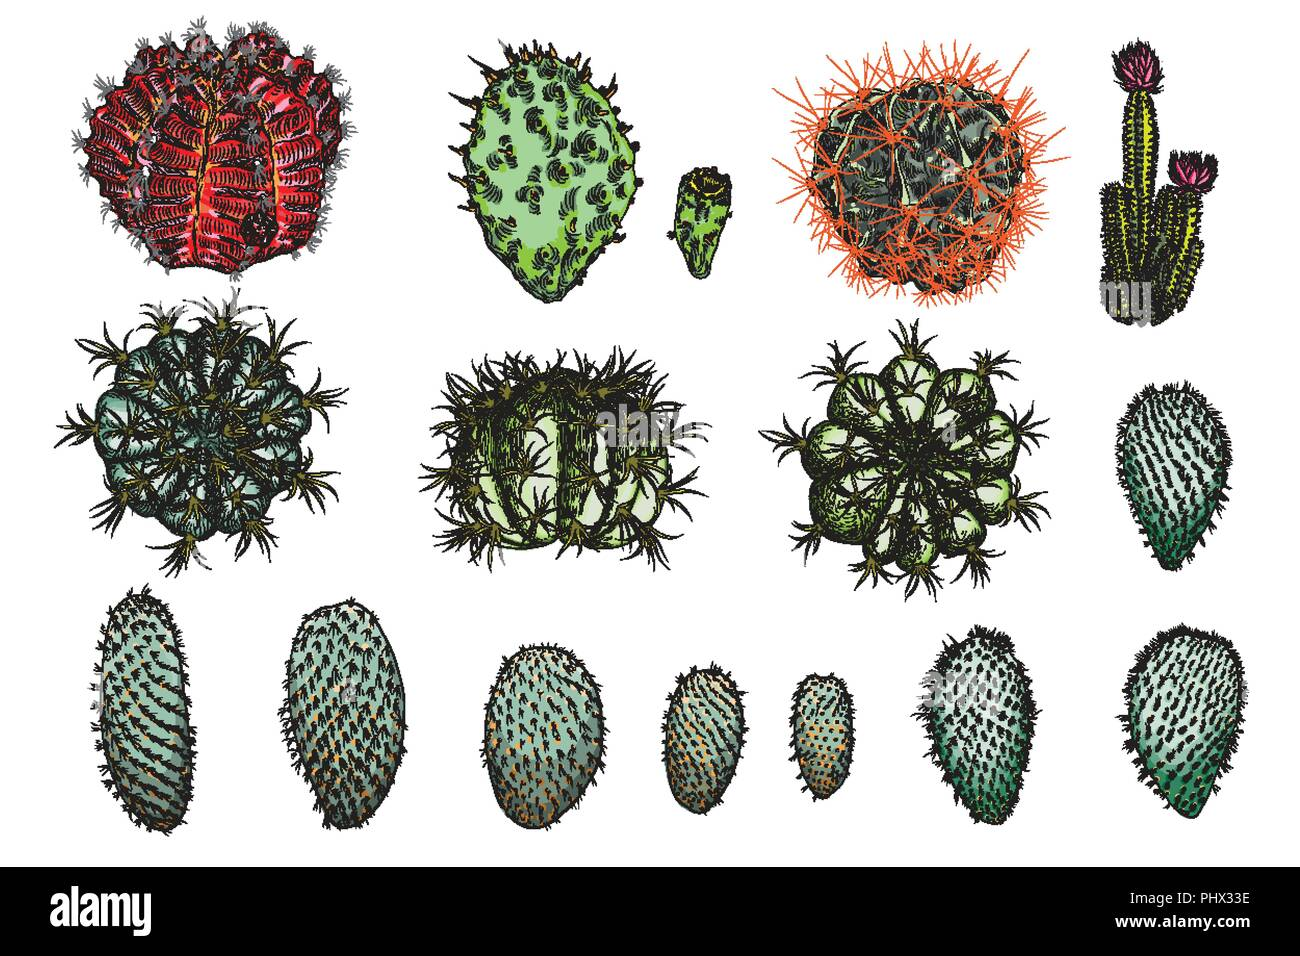 Exotic Cactus Succulents Set Different Cactuses And Cacti In Color Drawing Style Natural Hand Drawing Desert Plants Vector Stock Vector Image Art Alamy